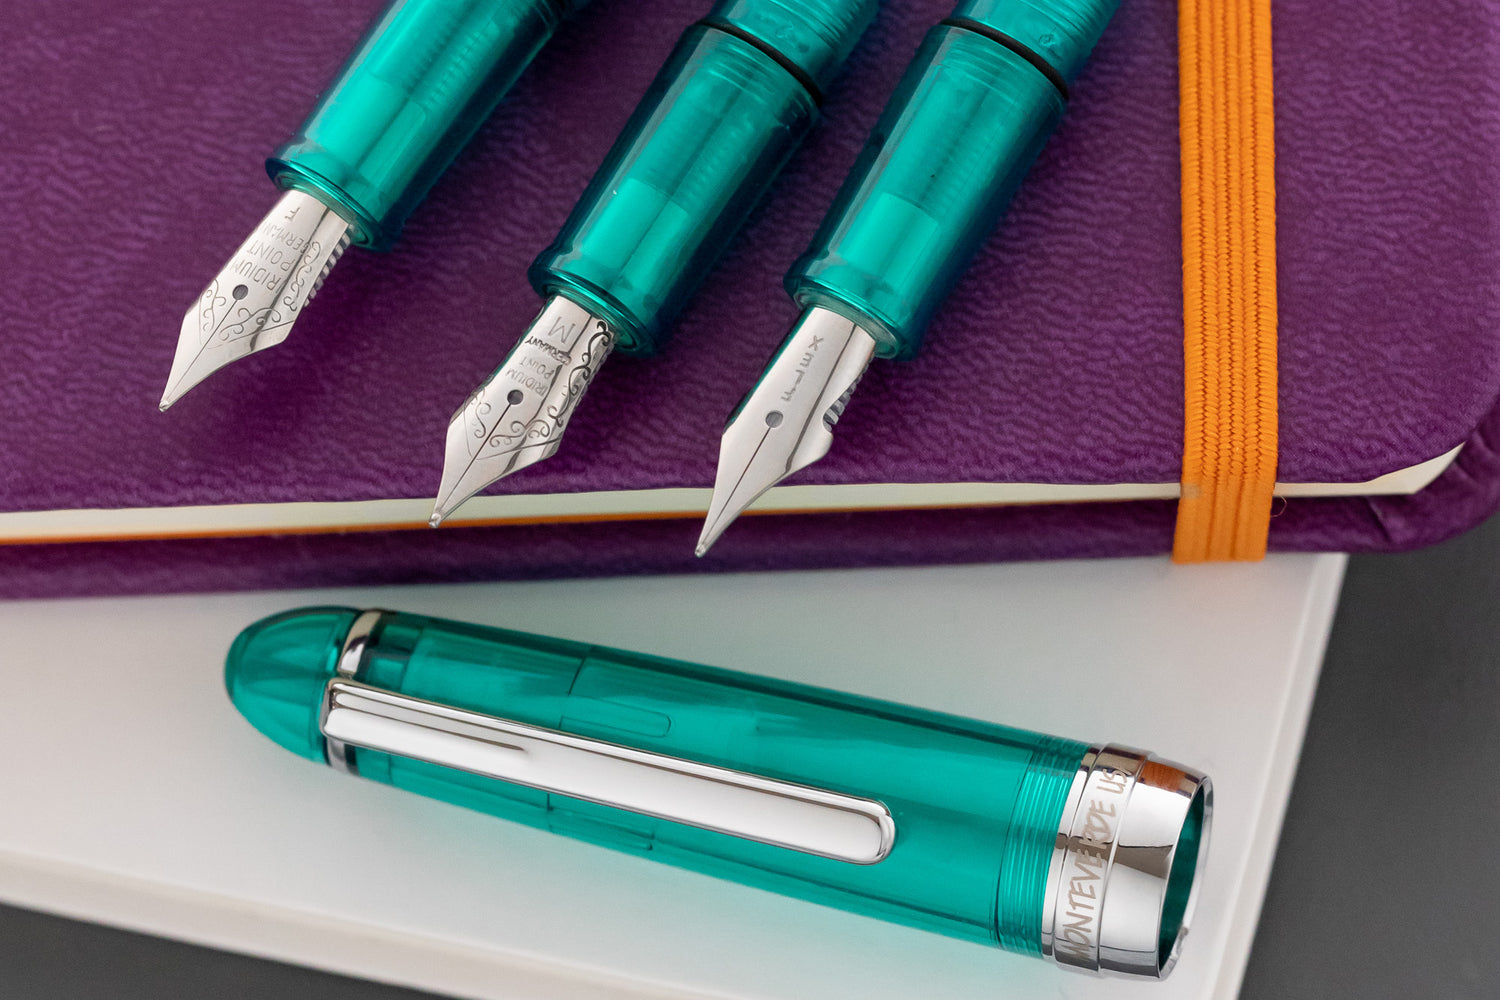 Monteverde Monza 3 Fountain Pen Gift Set - Crystal Clear